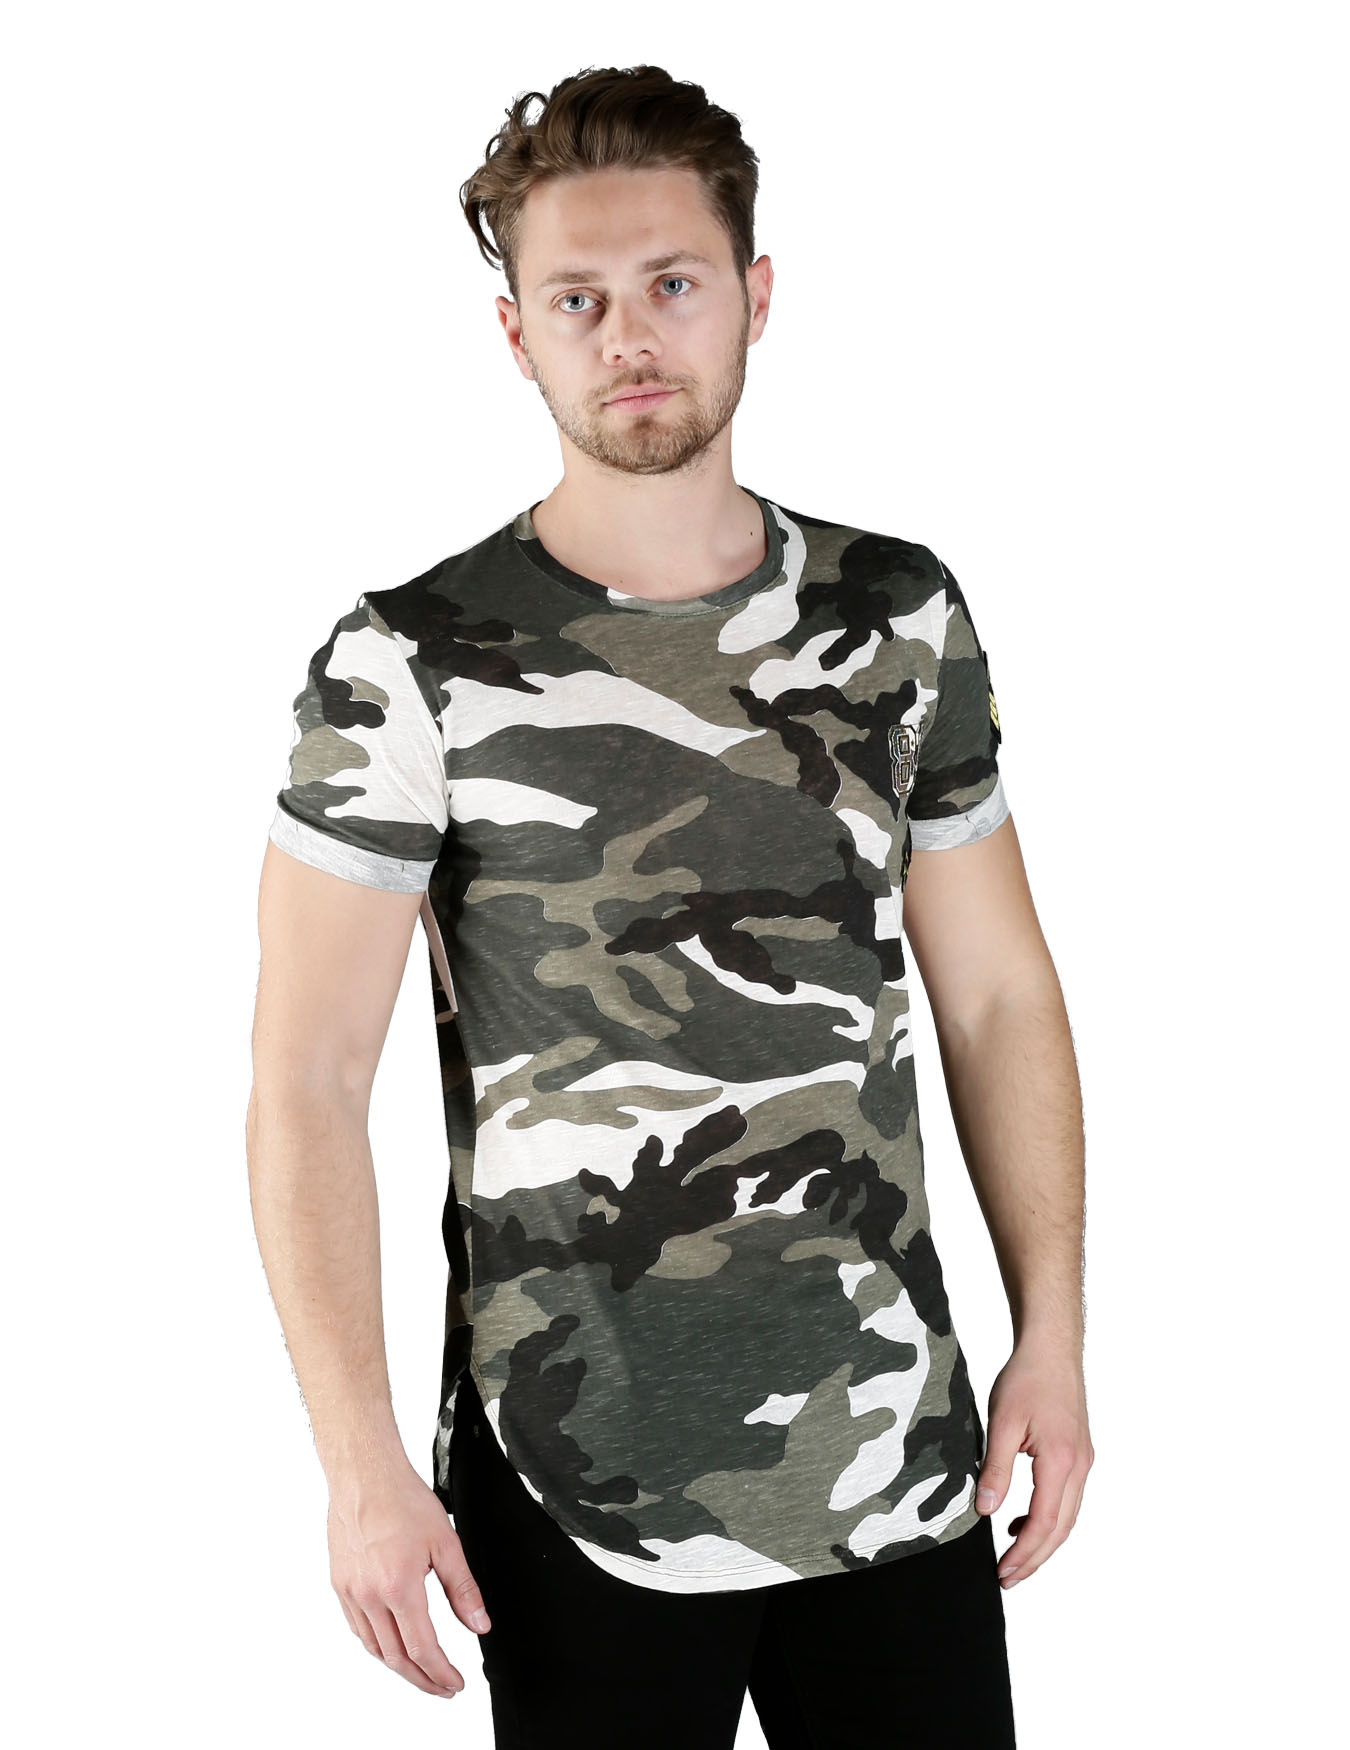 Ανδρικό T-Shirt In The Army - GRACE-JOHN - T-1677-2482